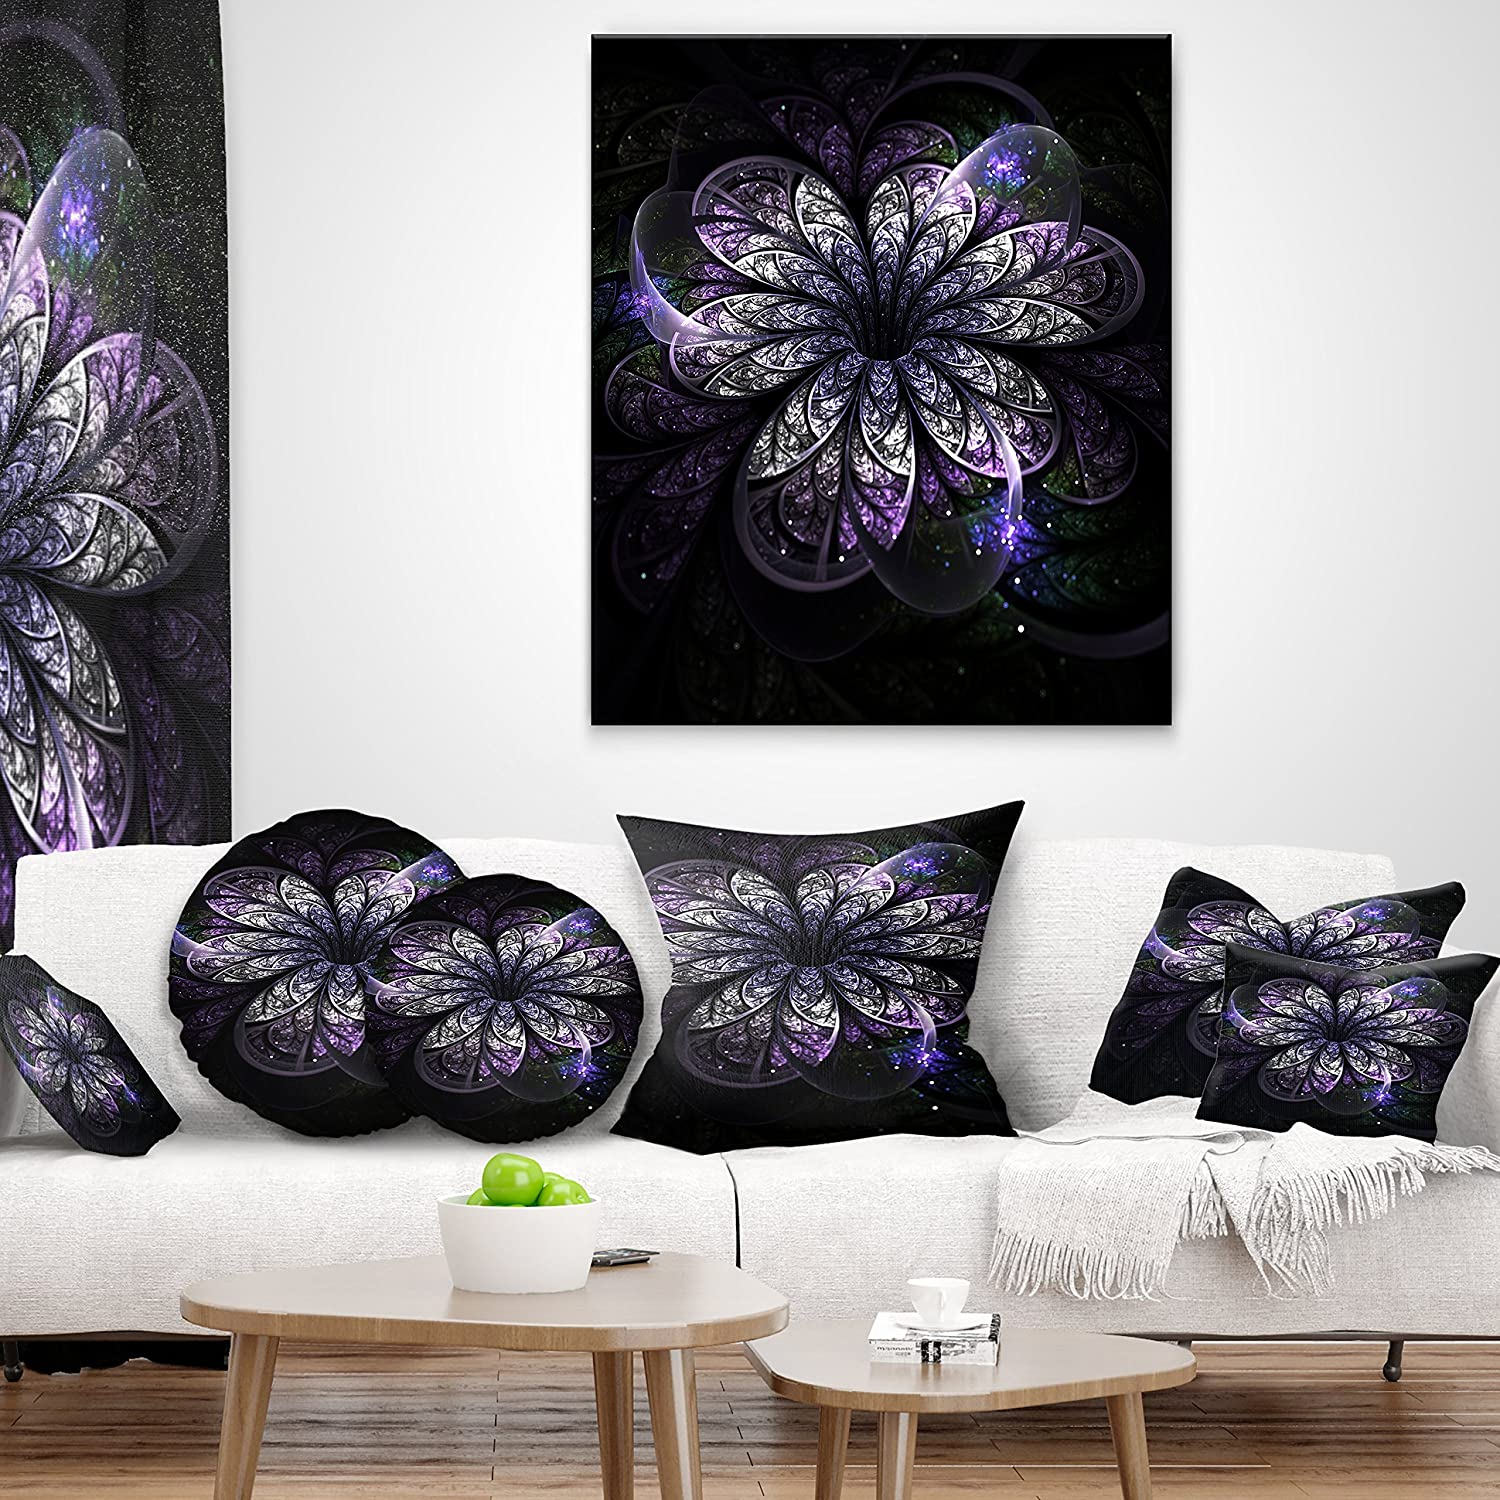 in Sofa Throw Pillow 18 in x 18 in Designart CU8707-18-18 Green Fractal Flower in Dark Floral Cushion Cover for Living Room Insert Printed On Both Side